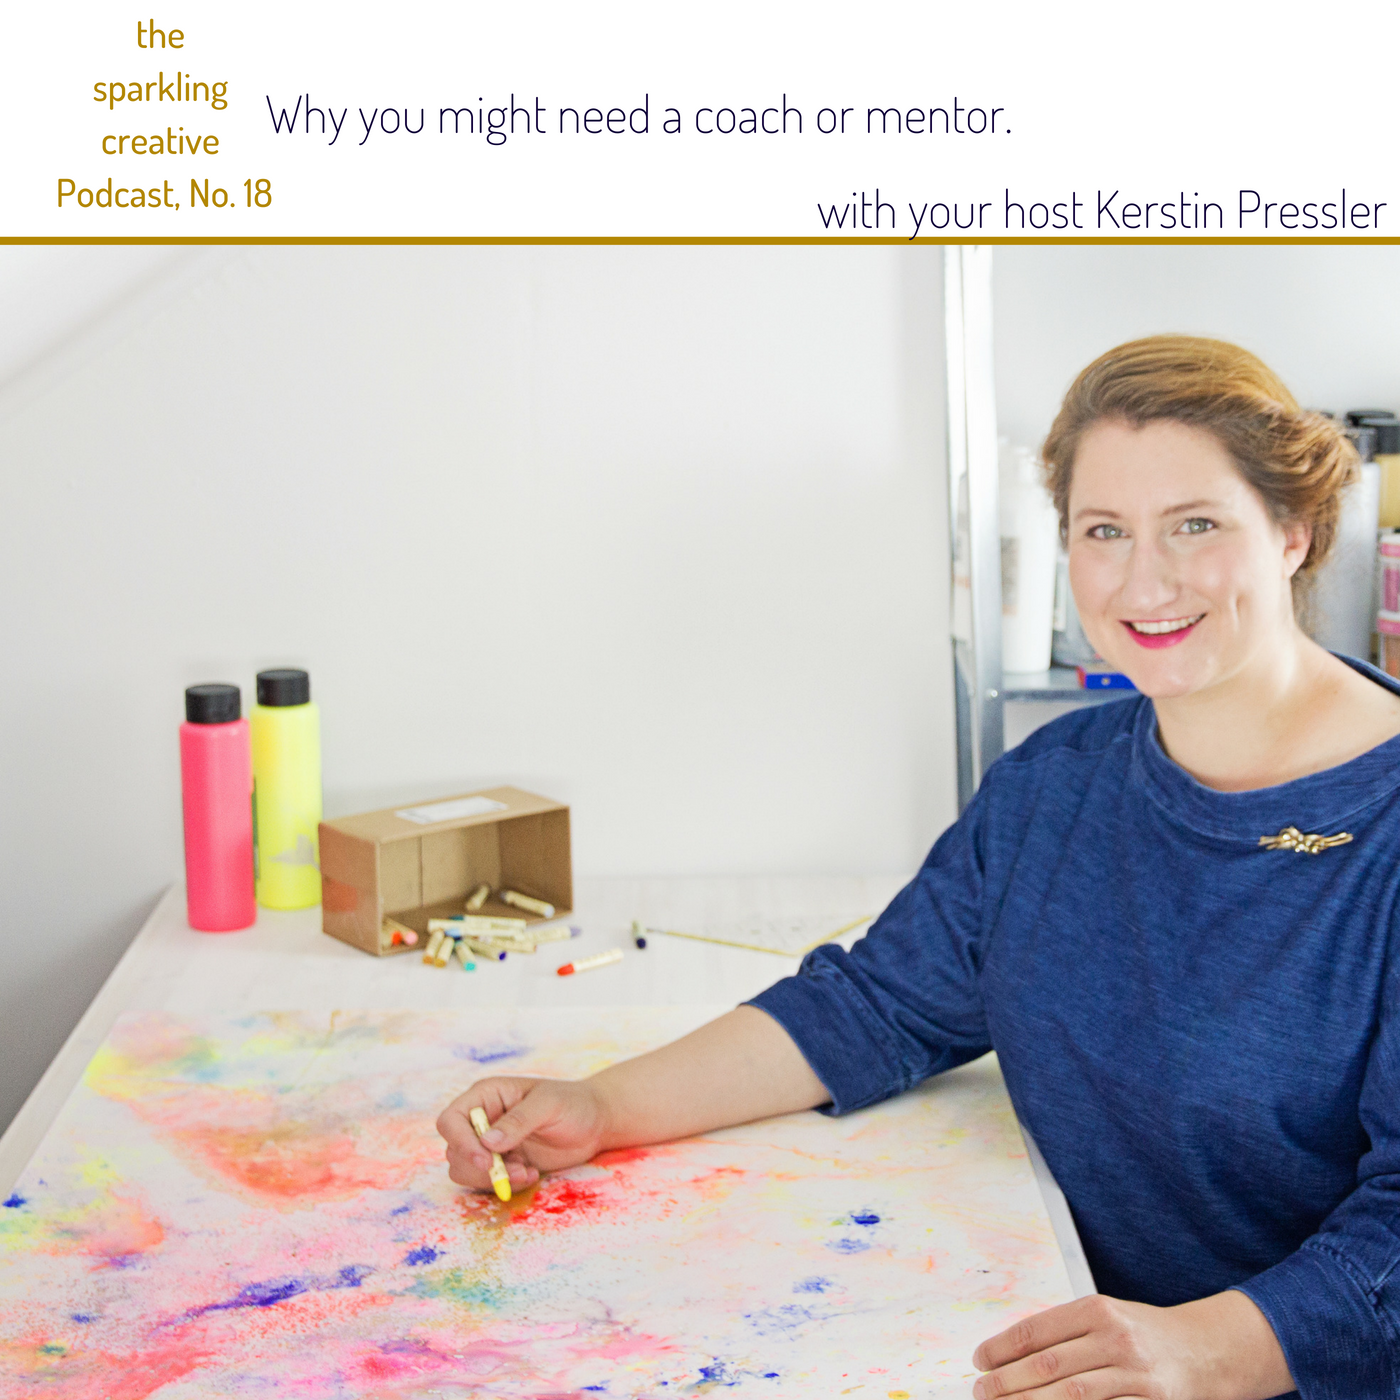 The sparkling creative Podcast Episode No. 18. Why you might need a Coach or Mentor.